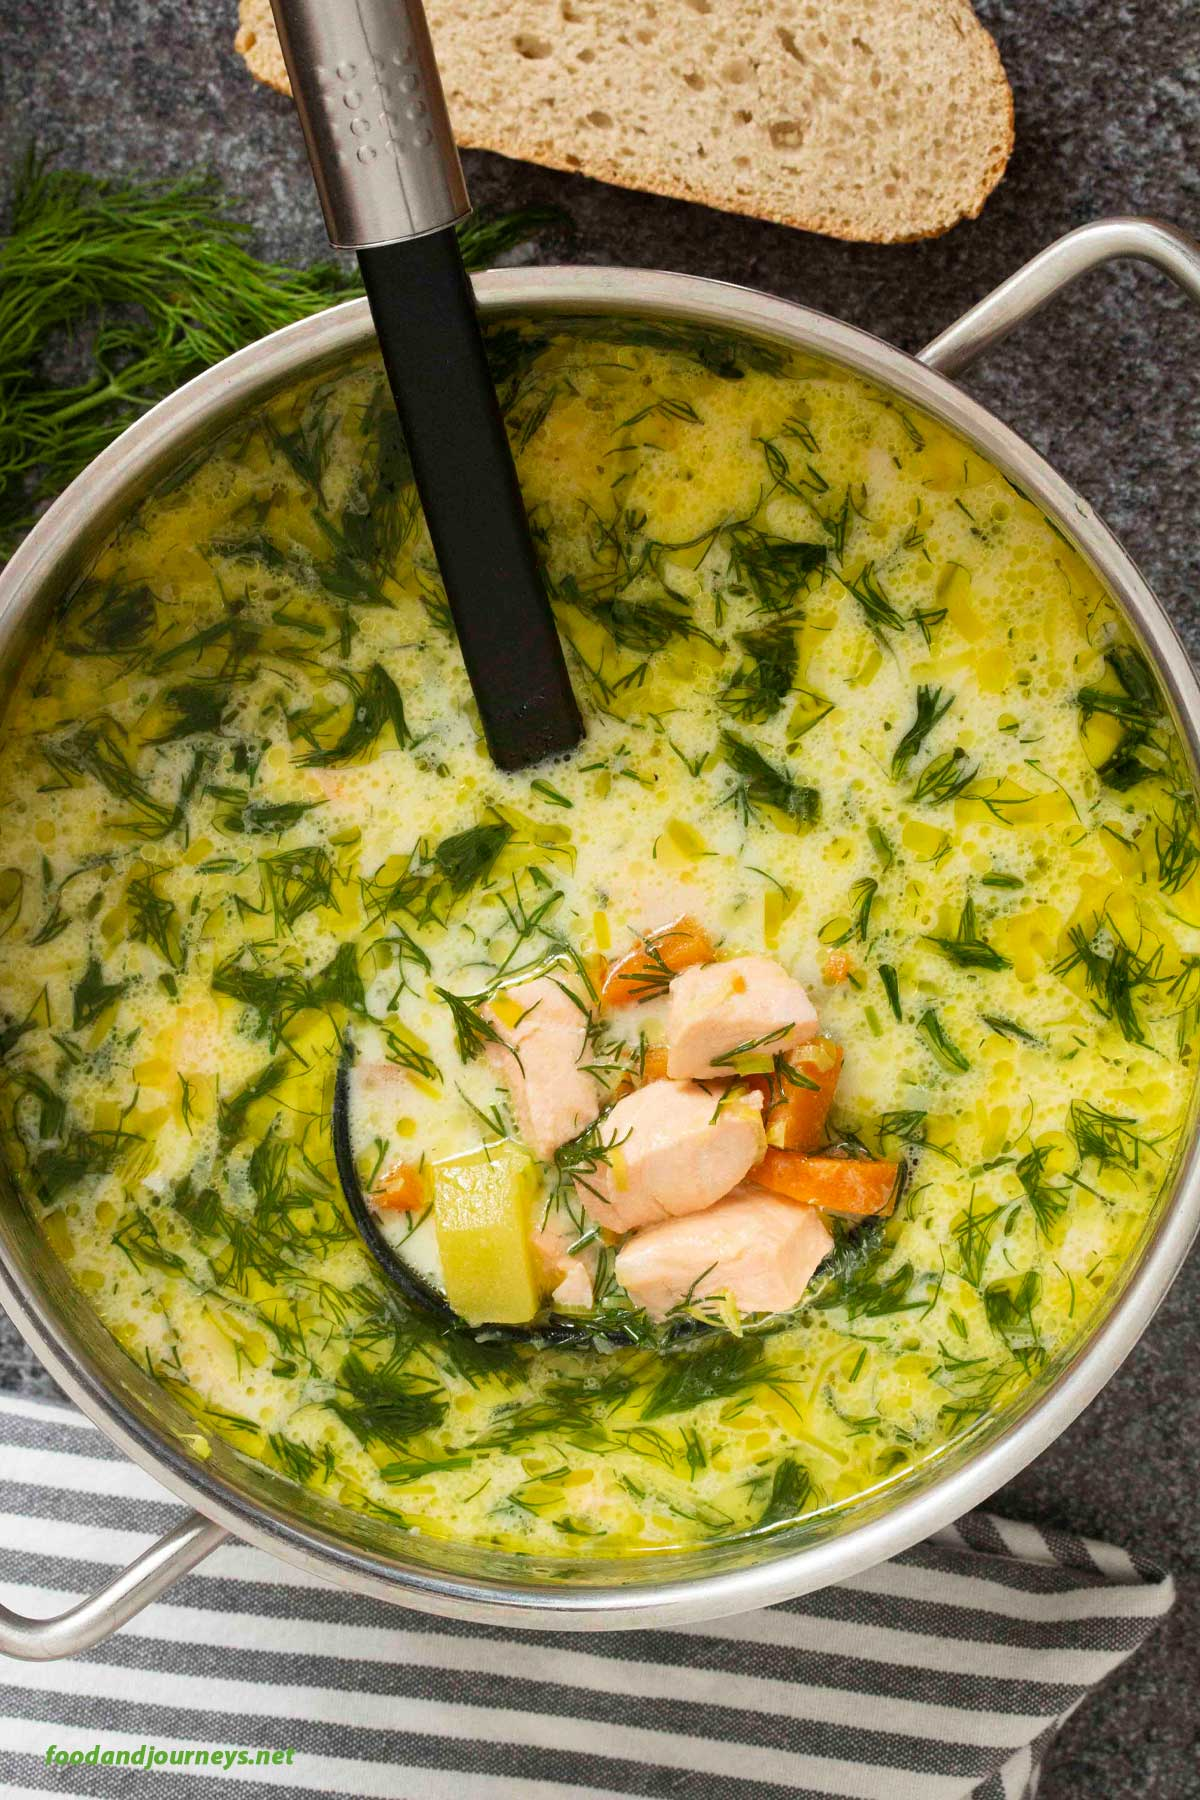 An overhead shot of a pot of finnish salmon soup, highlighting the pieces of salmon, ready for serving.